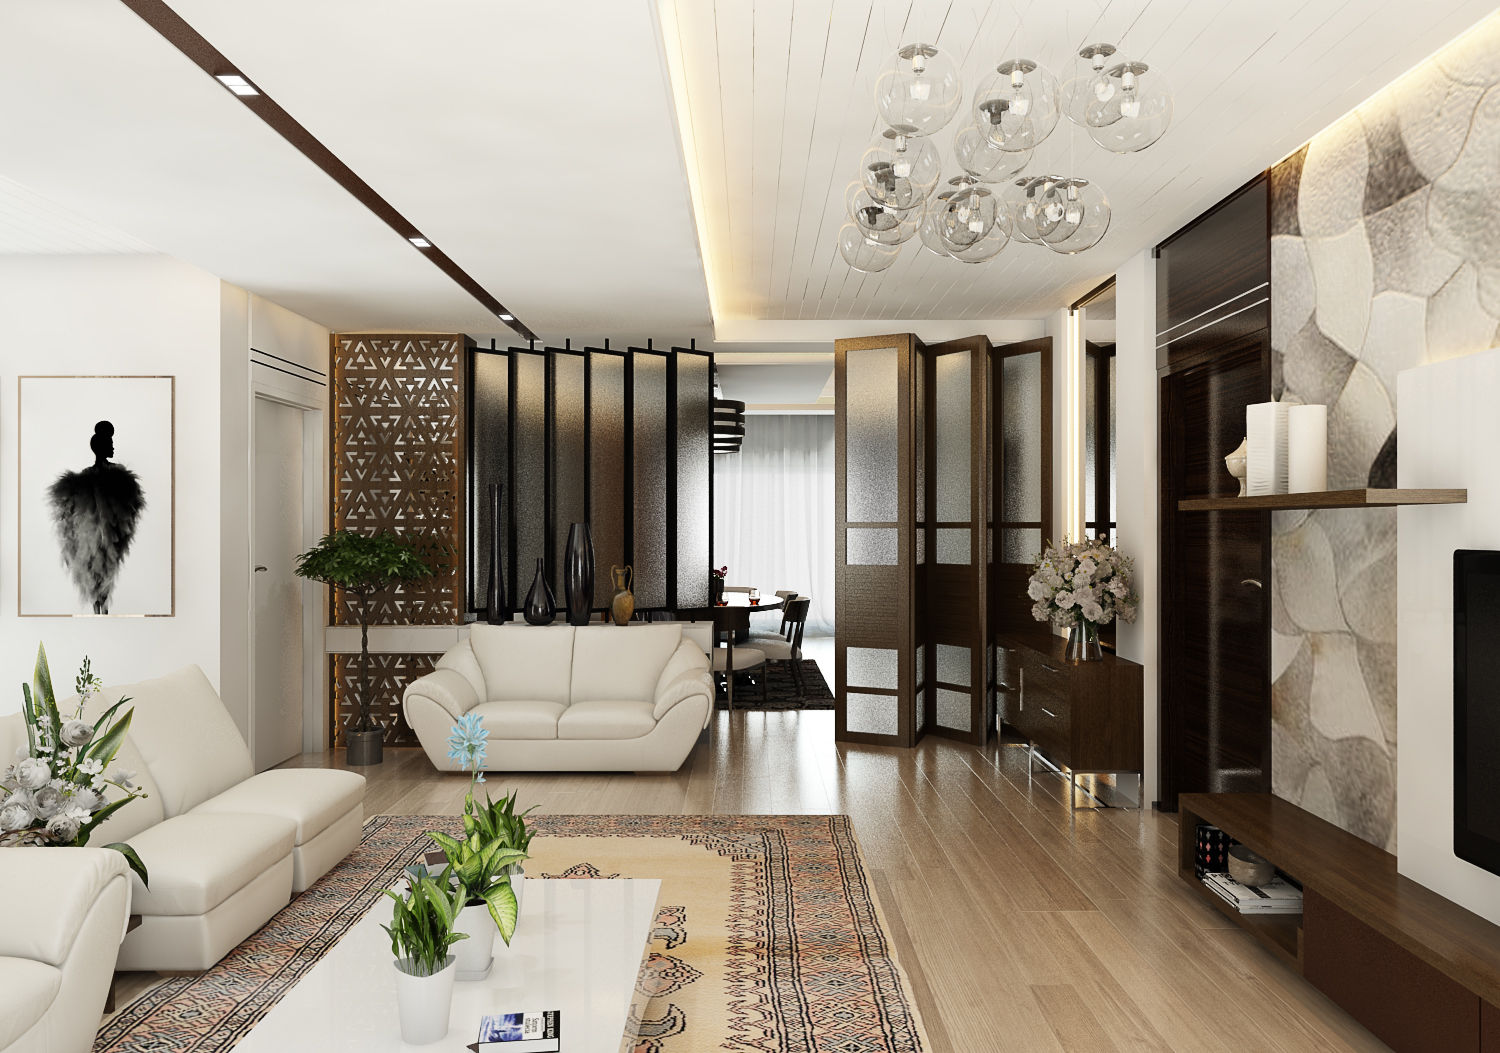 Best Solution for Small Space in Interior Design